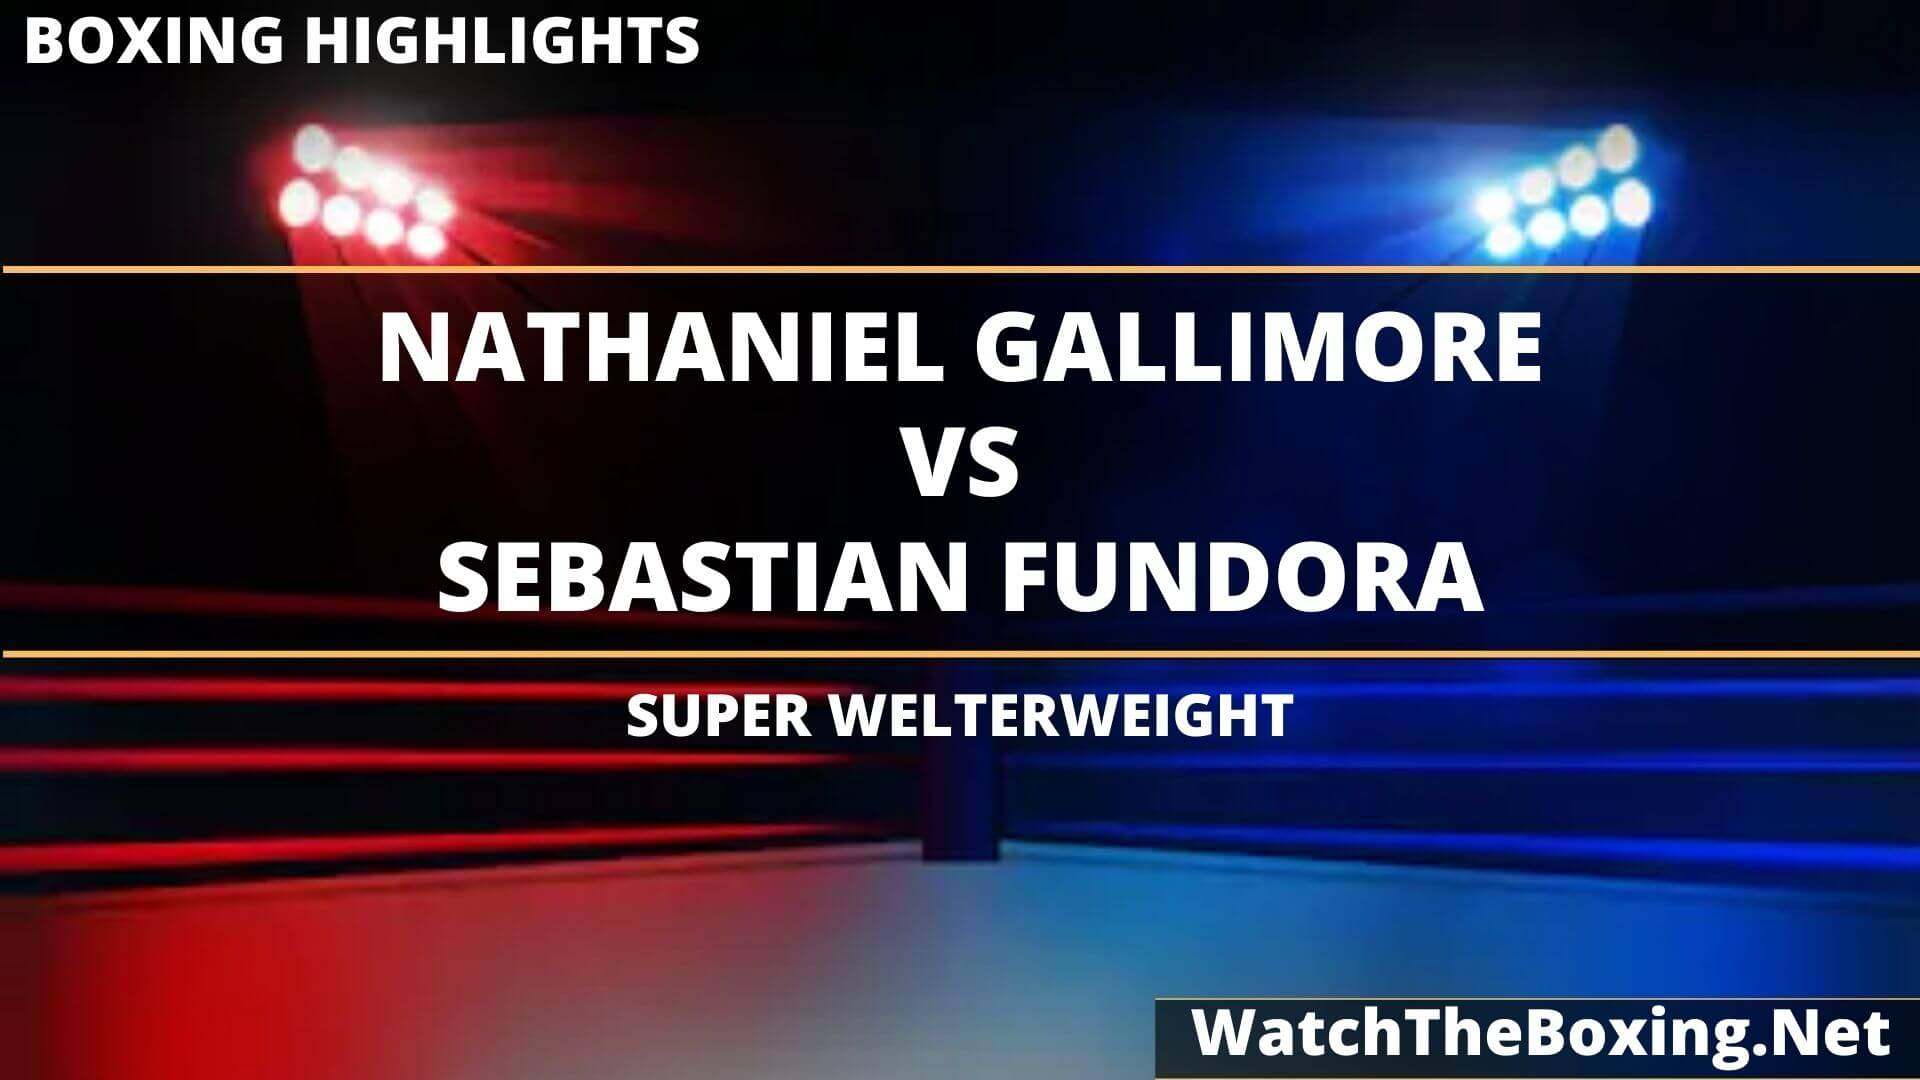 Nathaniel Gallimore Vs Sebastian Fundora Highlights 2020 Super Welterweight